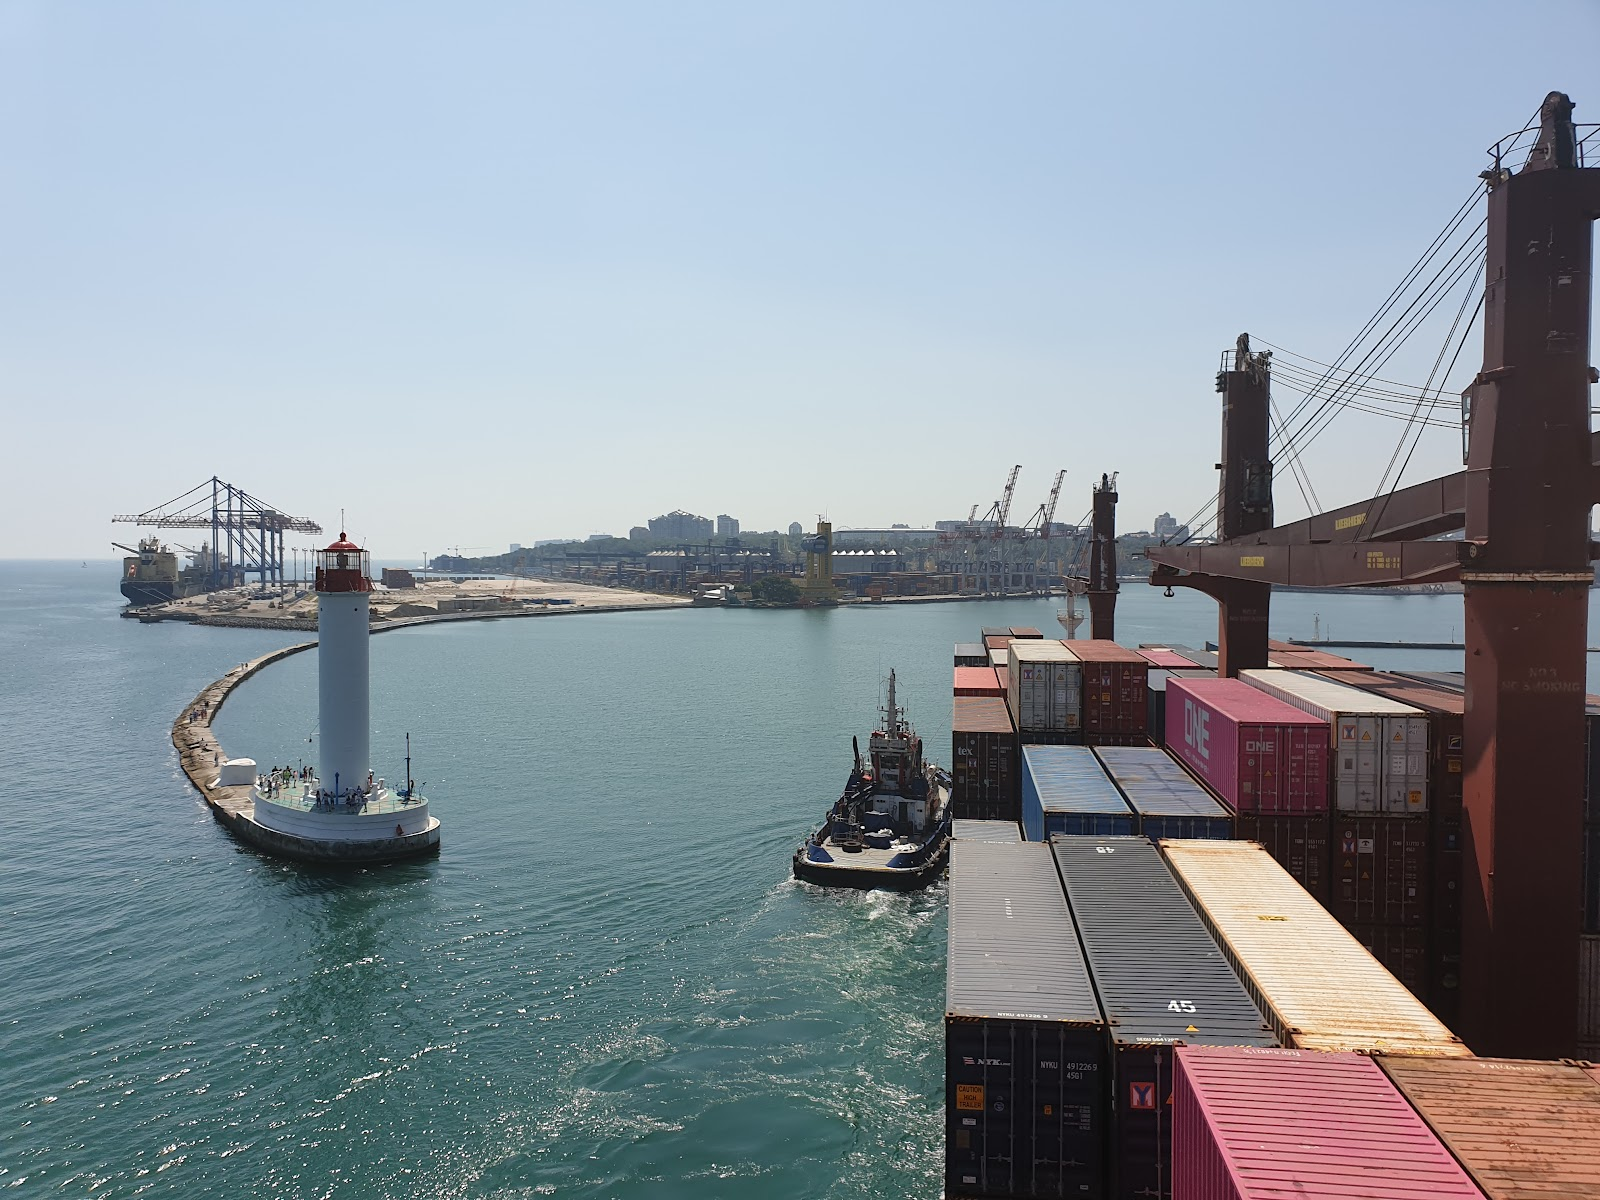 View from a container ship as it comes into port